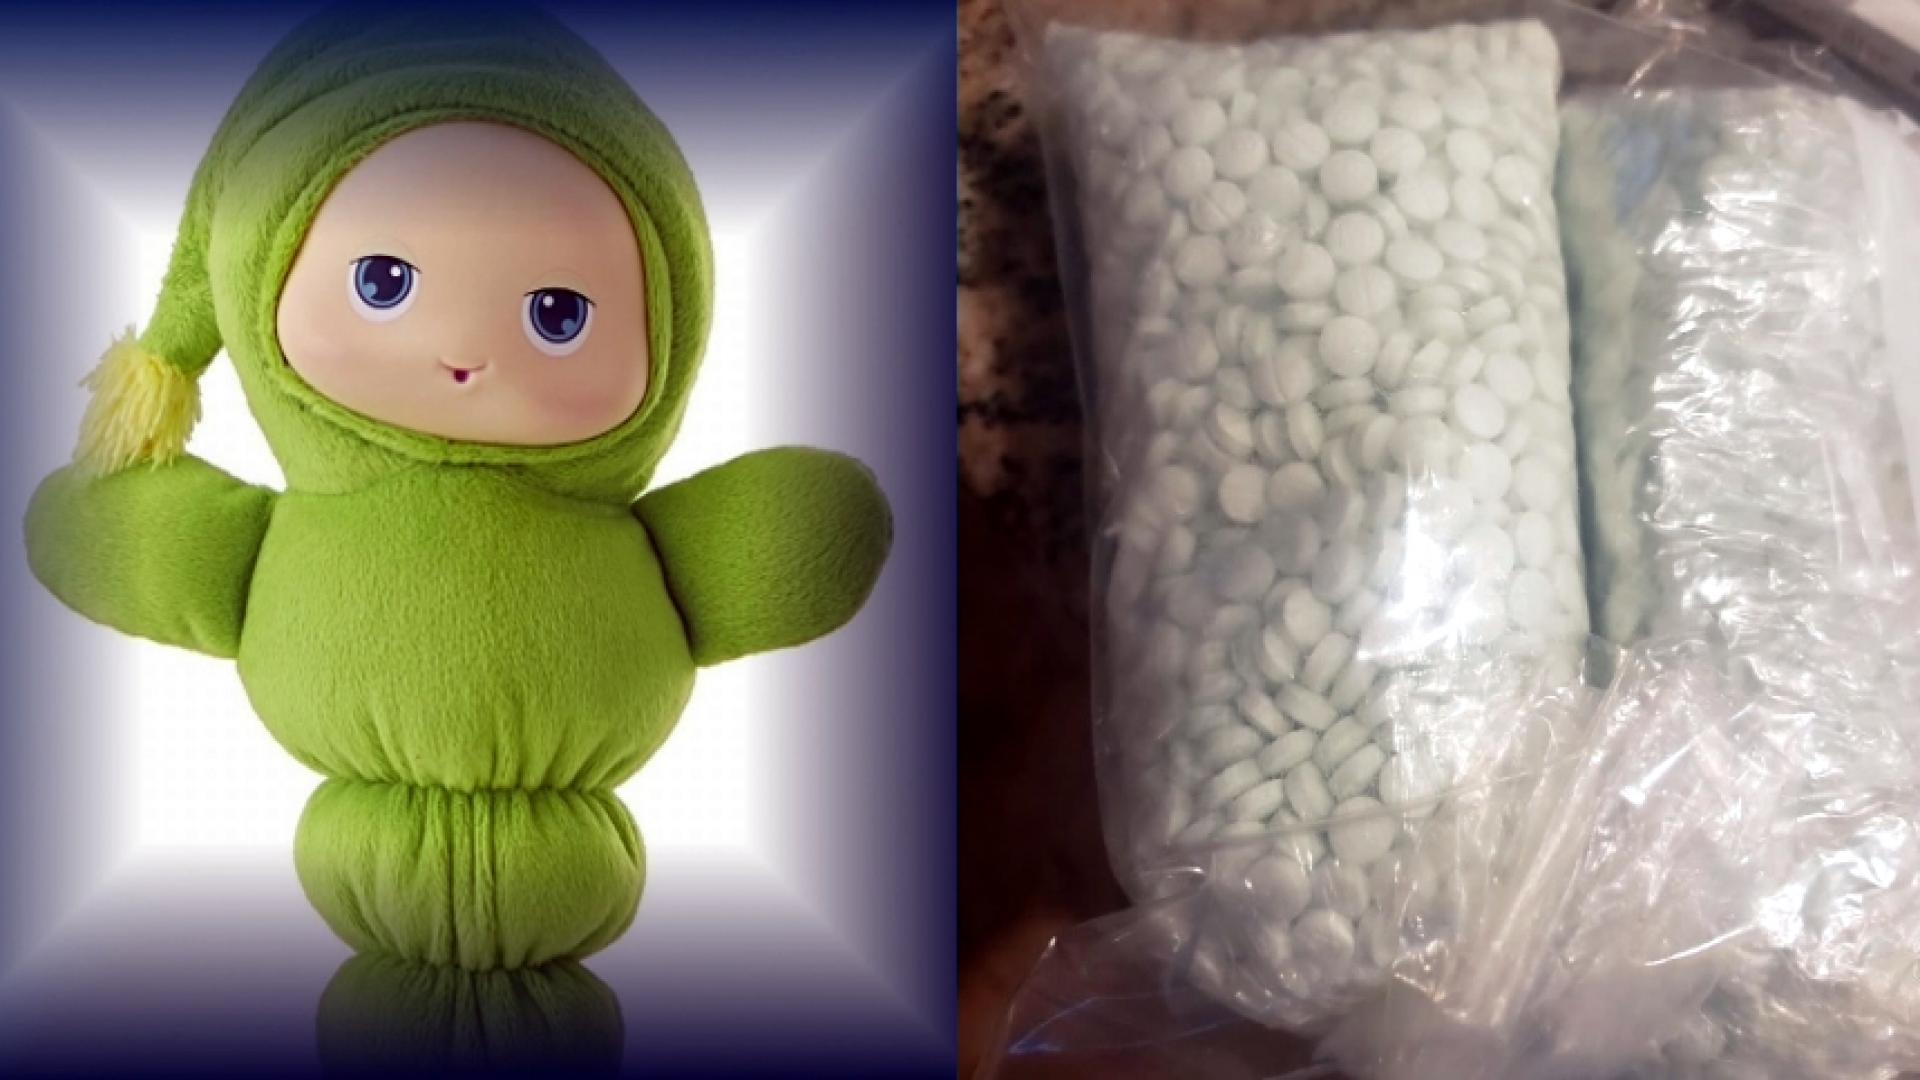 Drugs found in toy